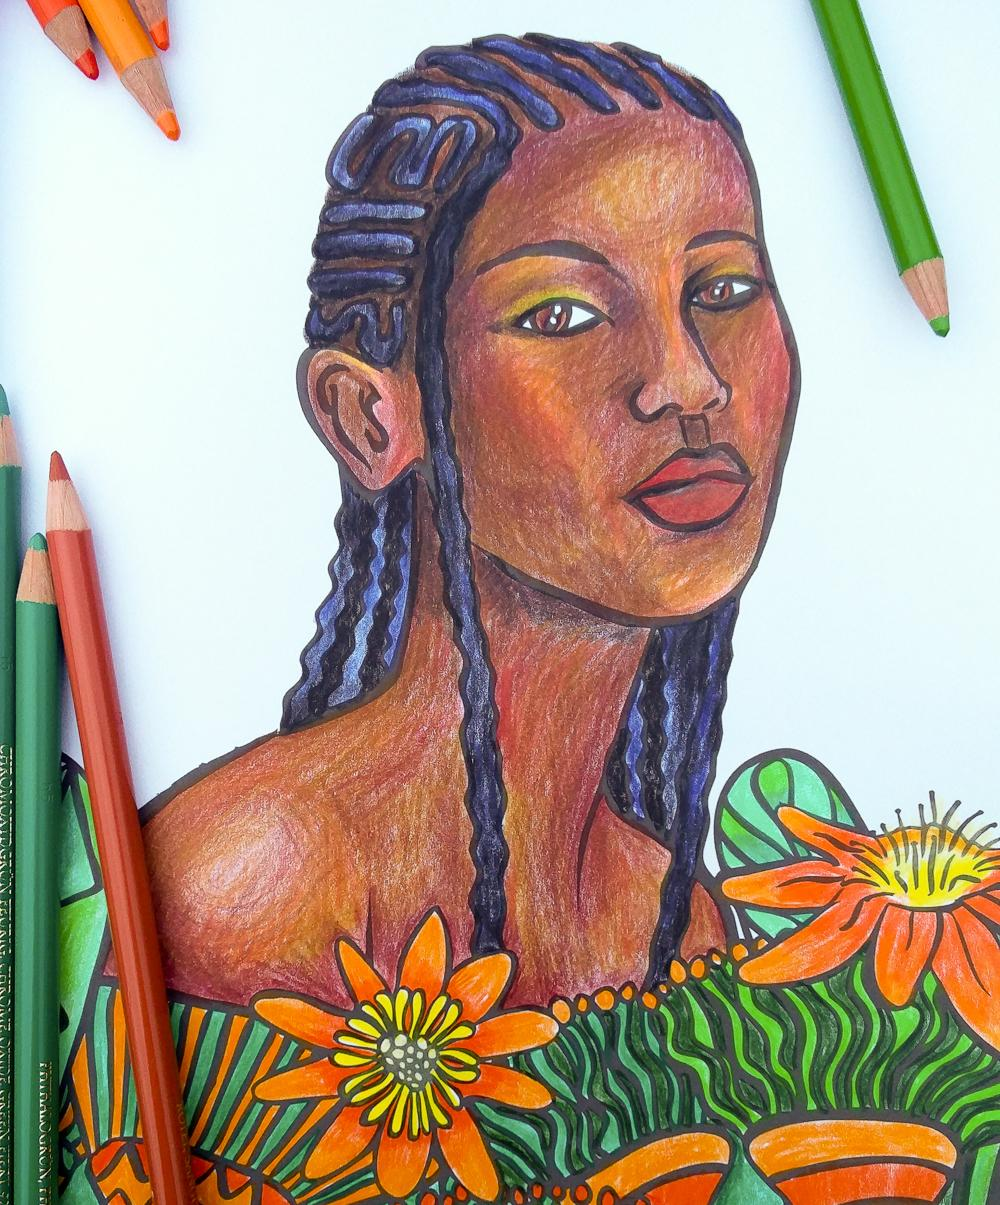 A coloured-in page from W+P+P featuring a Black woman with Cornrows peeking out from orange flowers; coloured pencils rest invitingly on the page